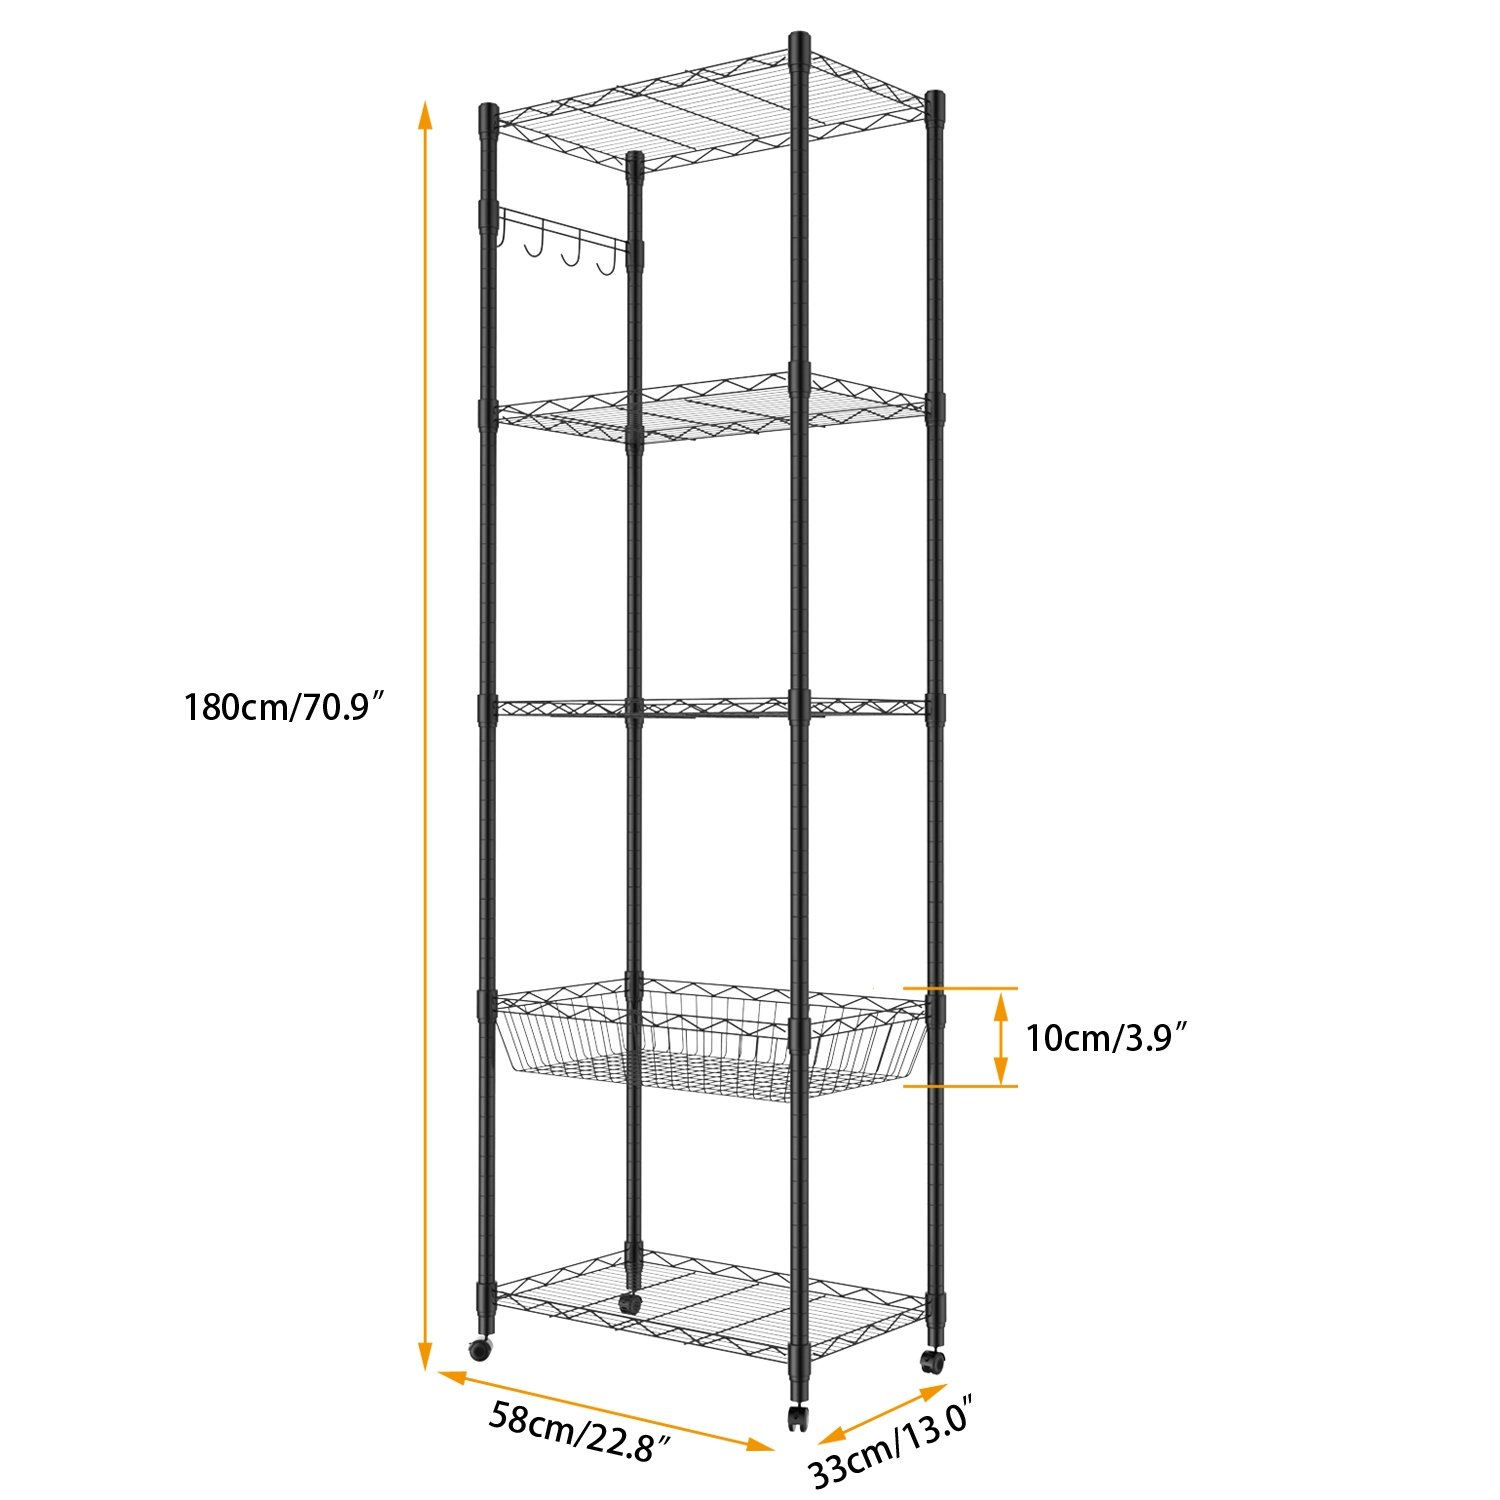 5 Tier Steel Wire Shelving with Wheels, Shelving Storage Organizer Rack for Kitchen Bathroom Balcony Living Room 71inch - Black [US STOCK] by ferty (Image #7)